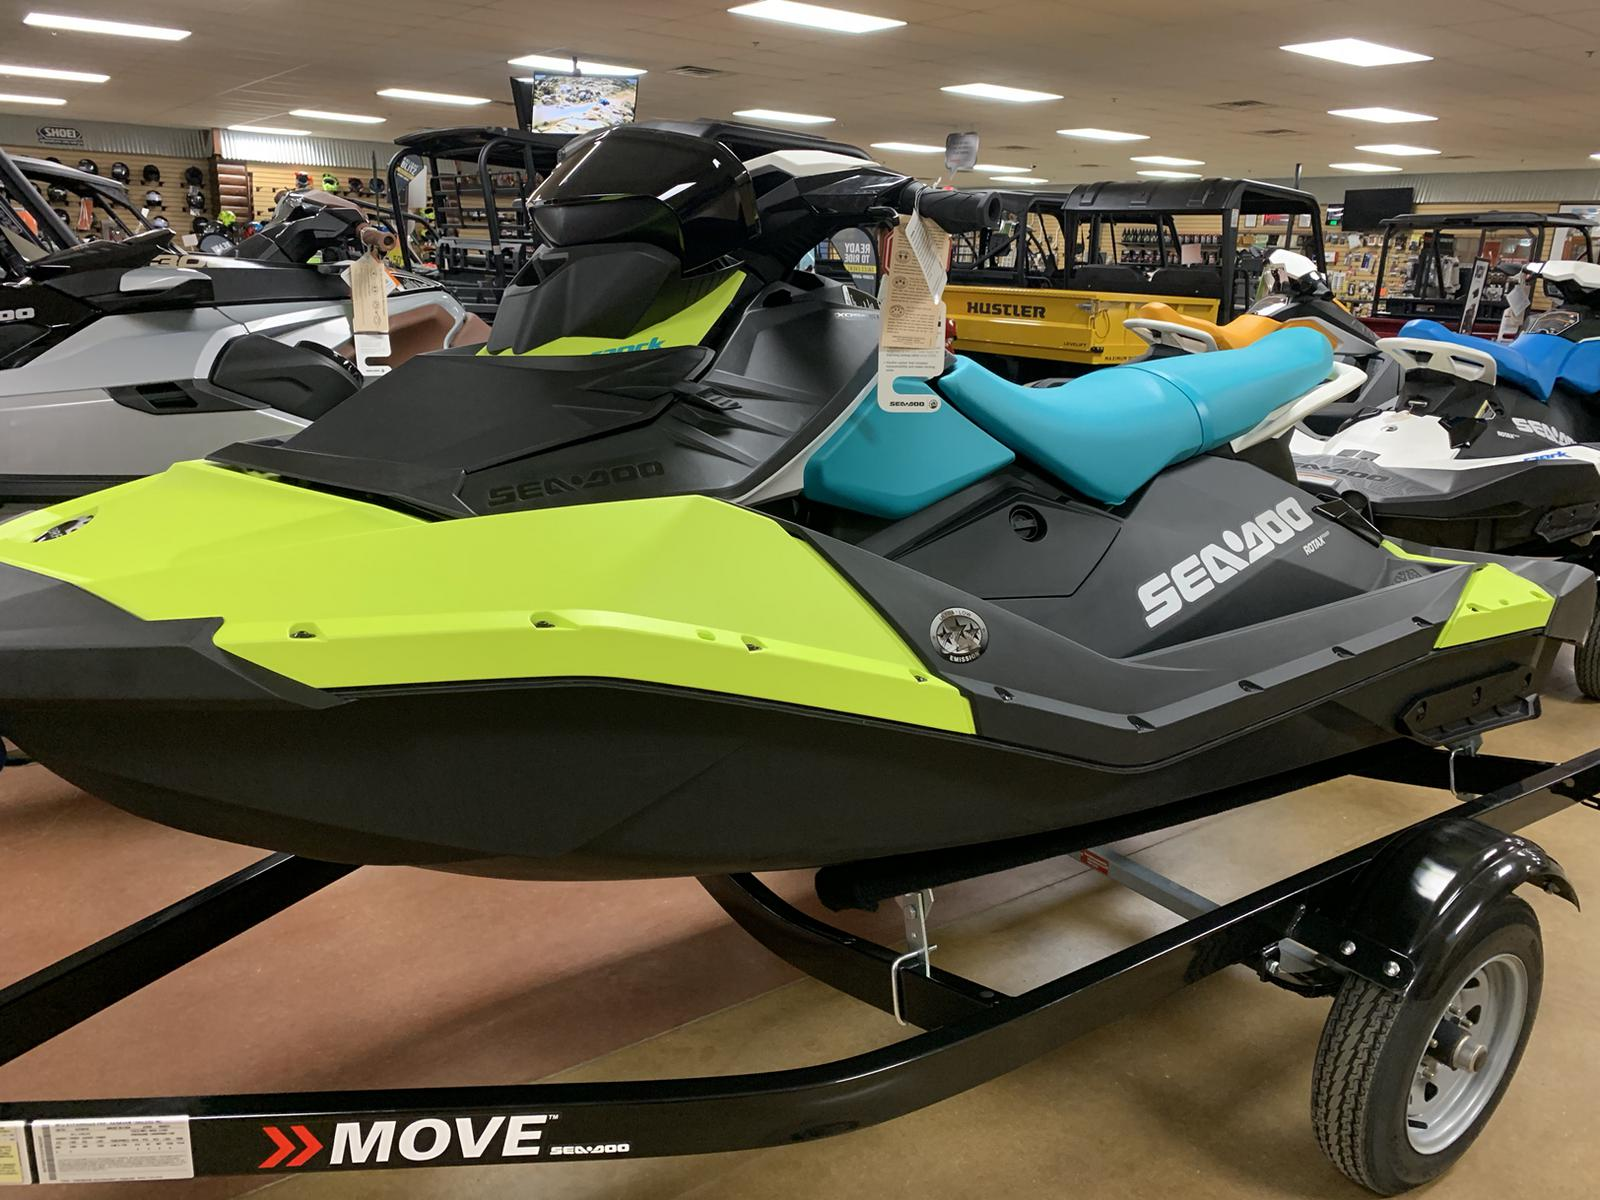 Inventory from Yamaha and Sea-Doo No Limit Powersports